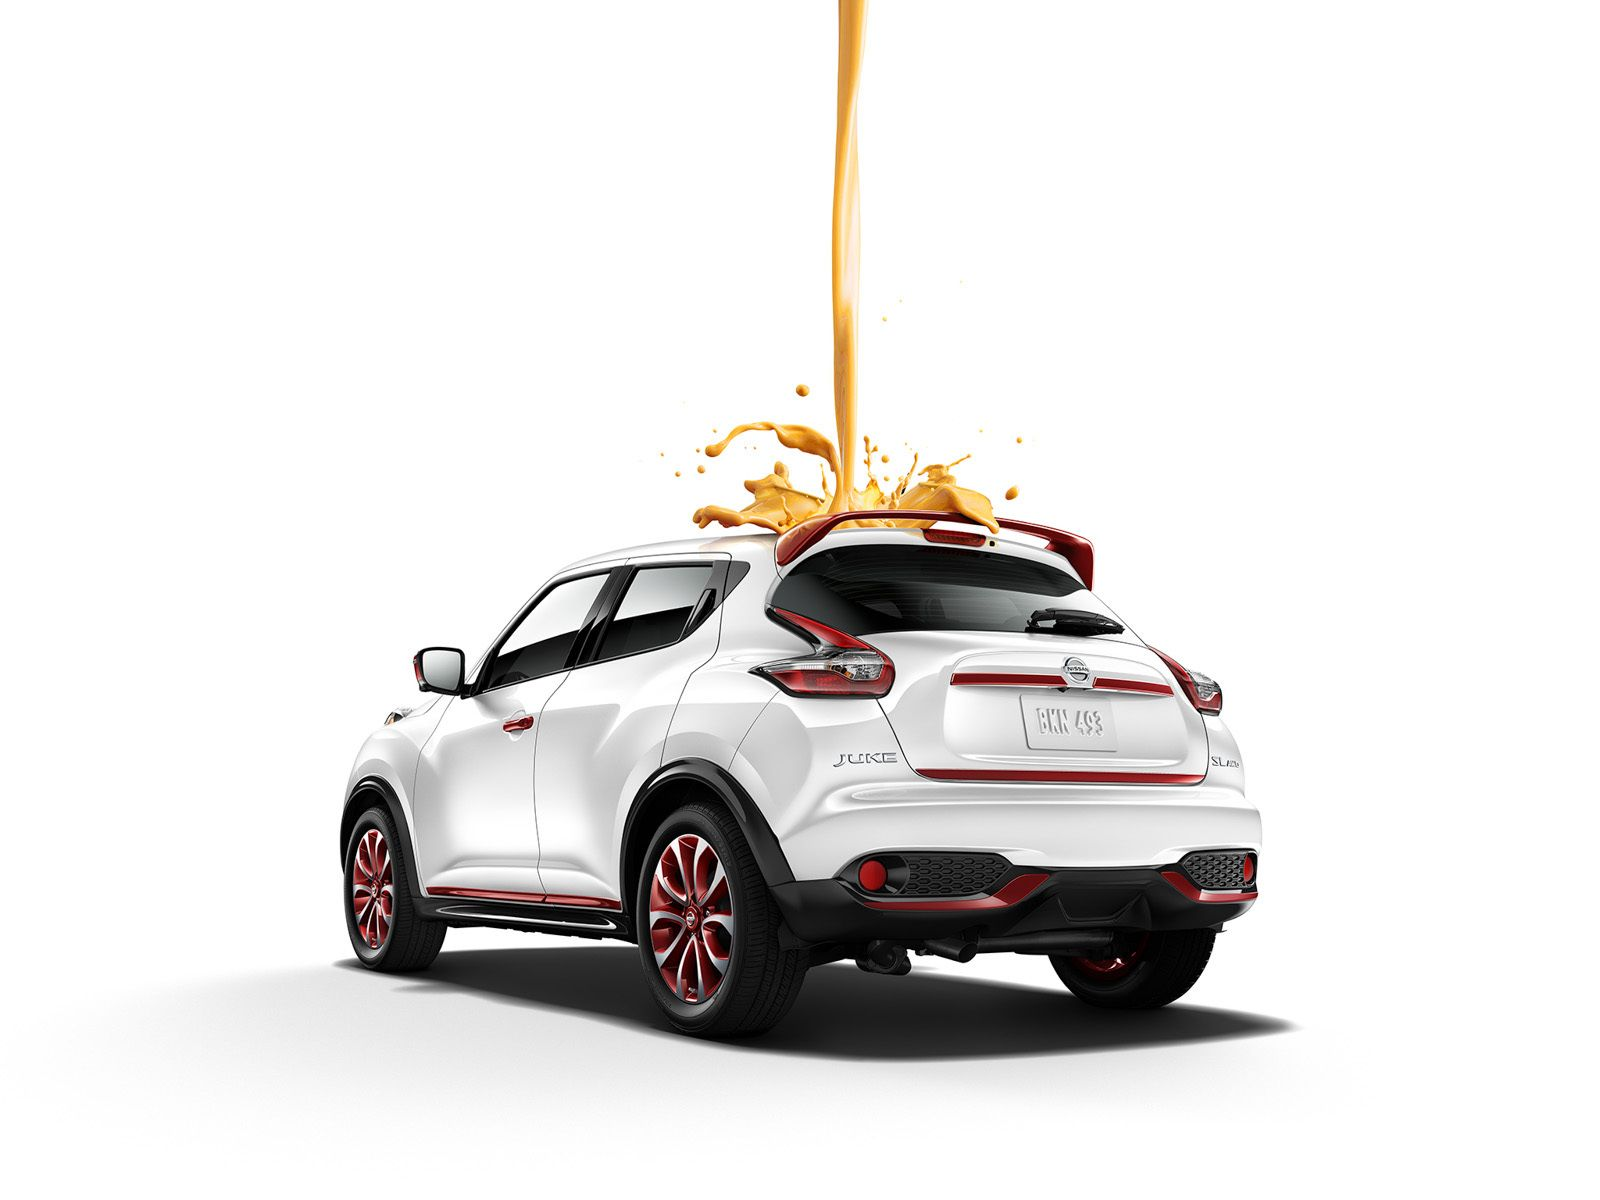 Nissan Juke Paint Splash